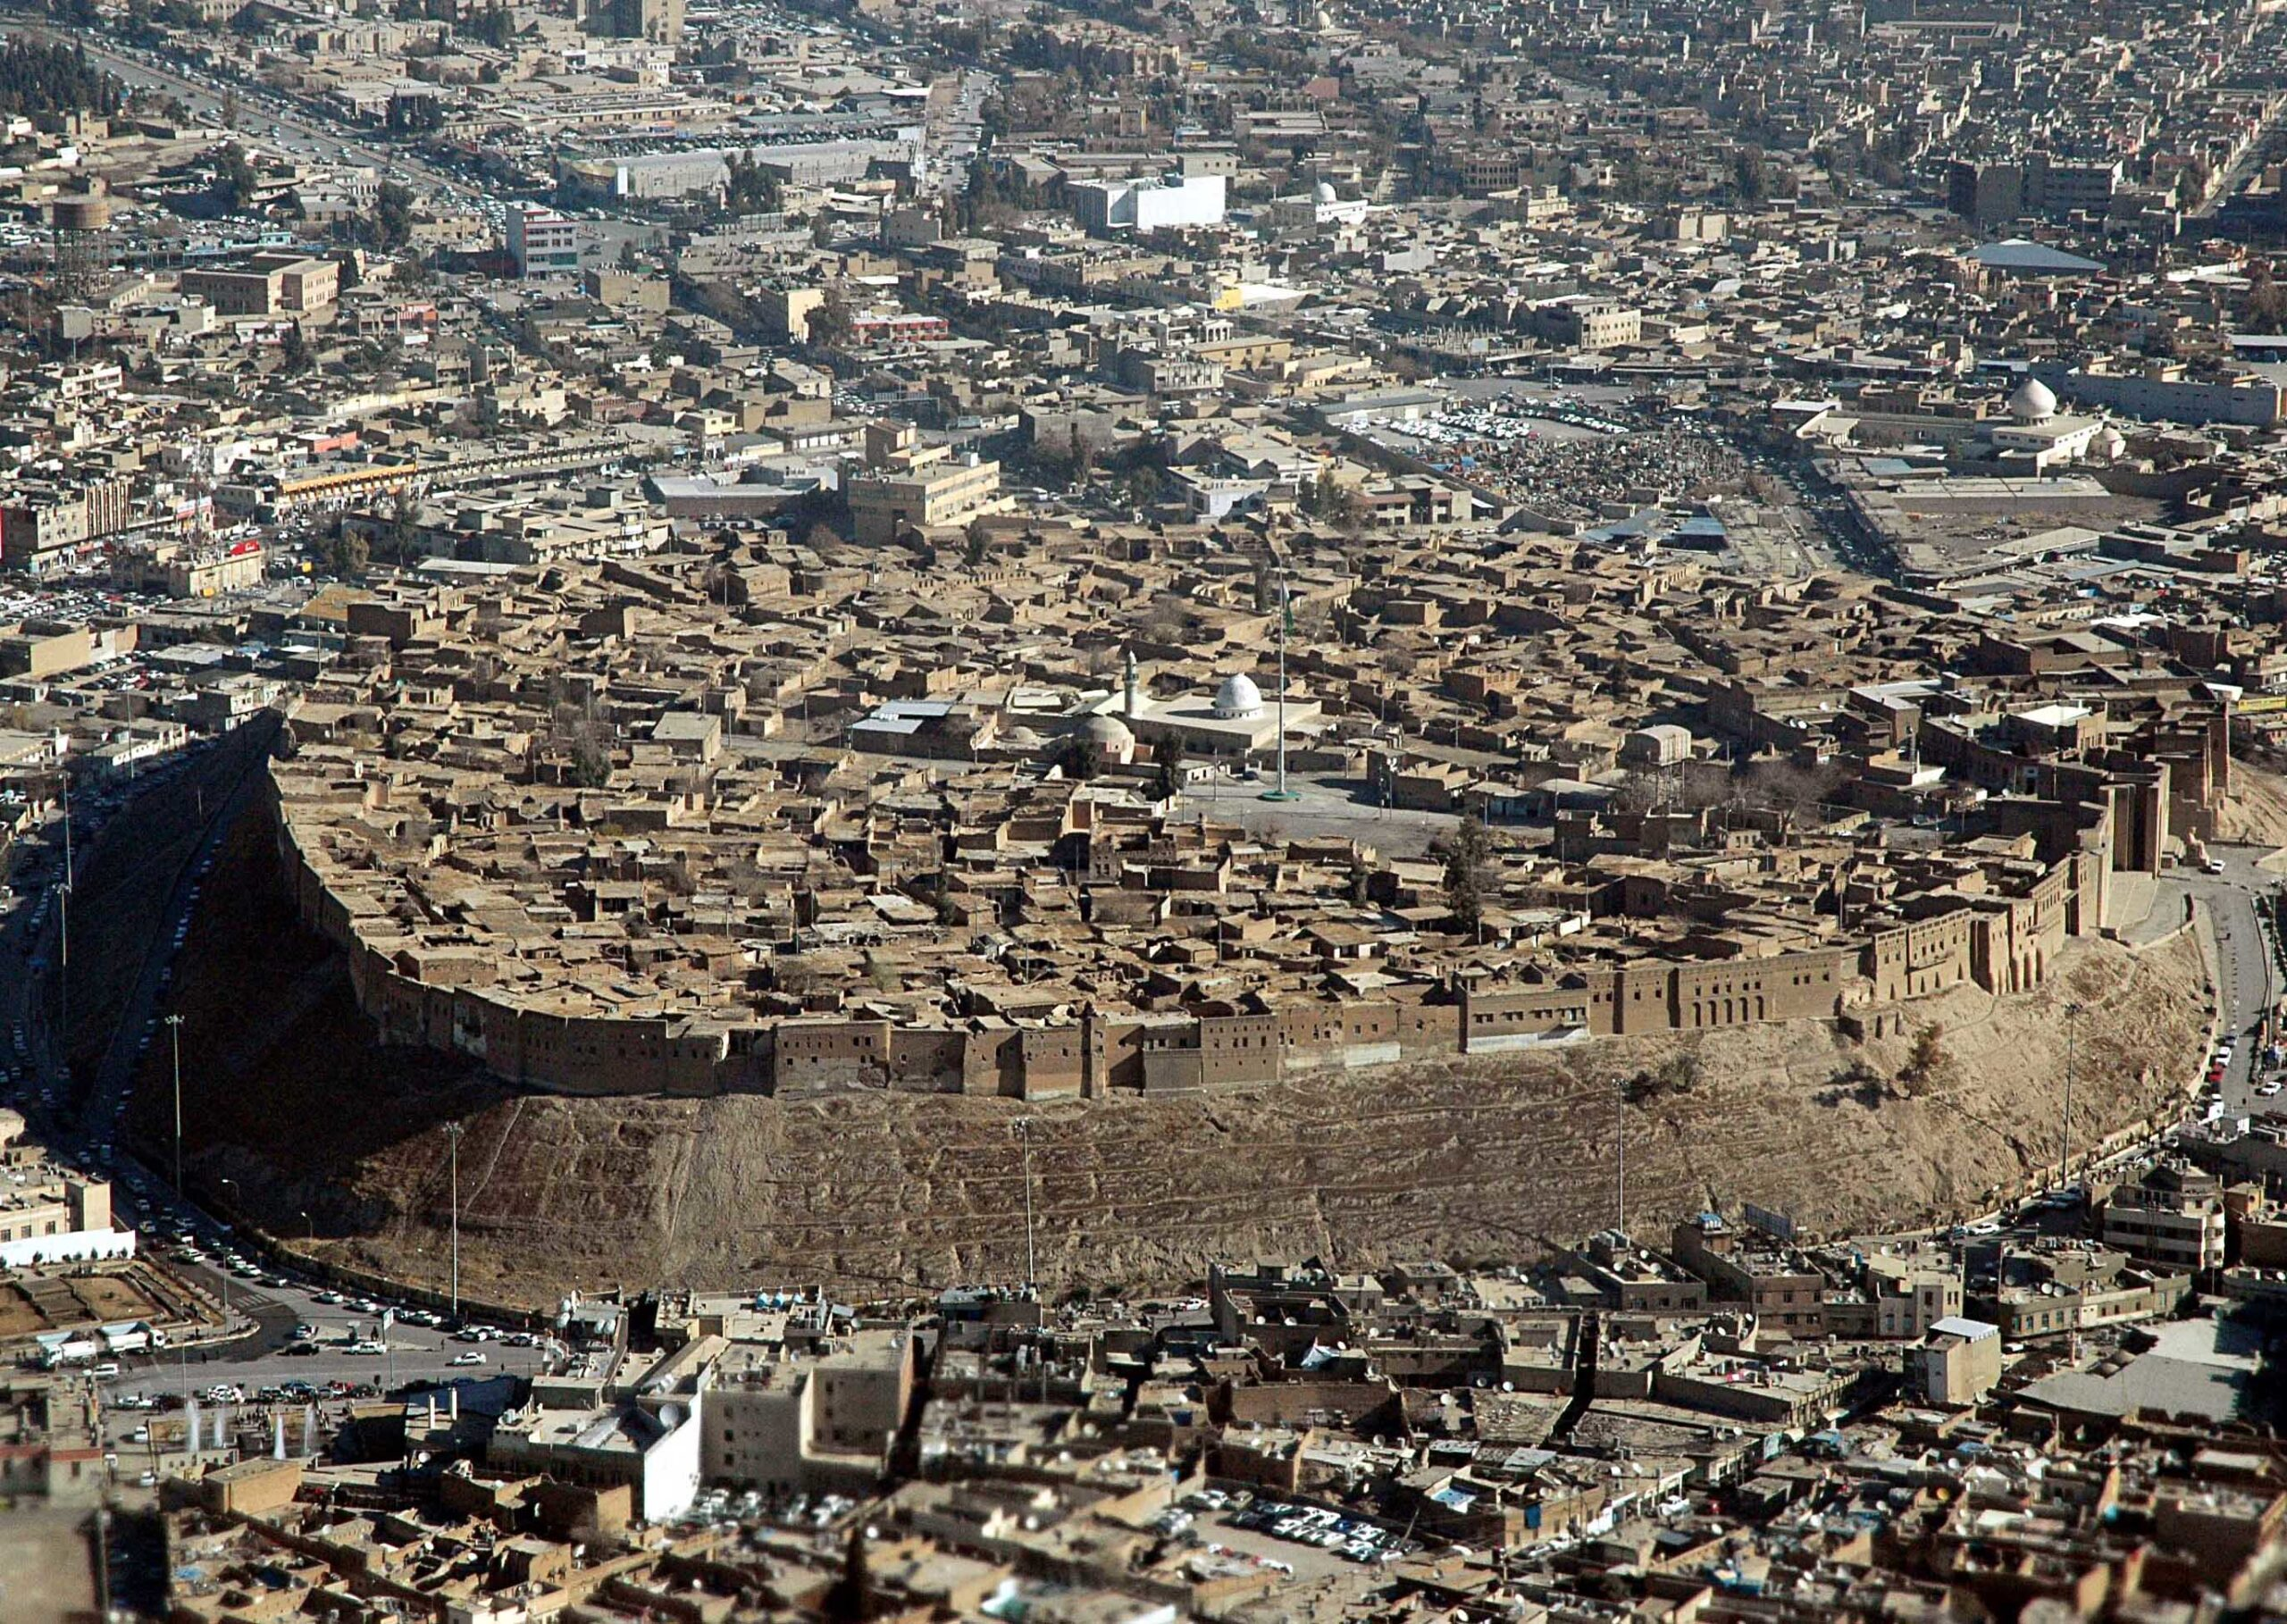 Erbil: One of the oldest towns in the world